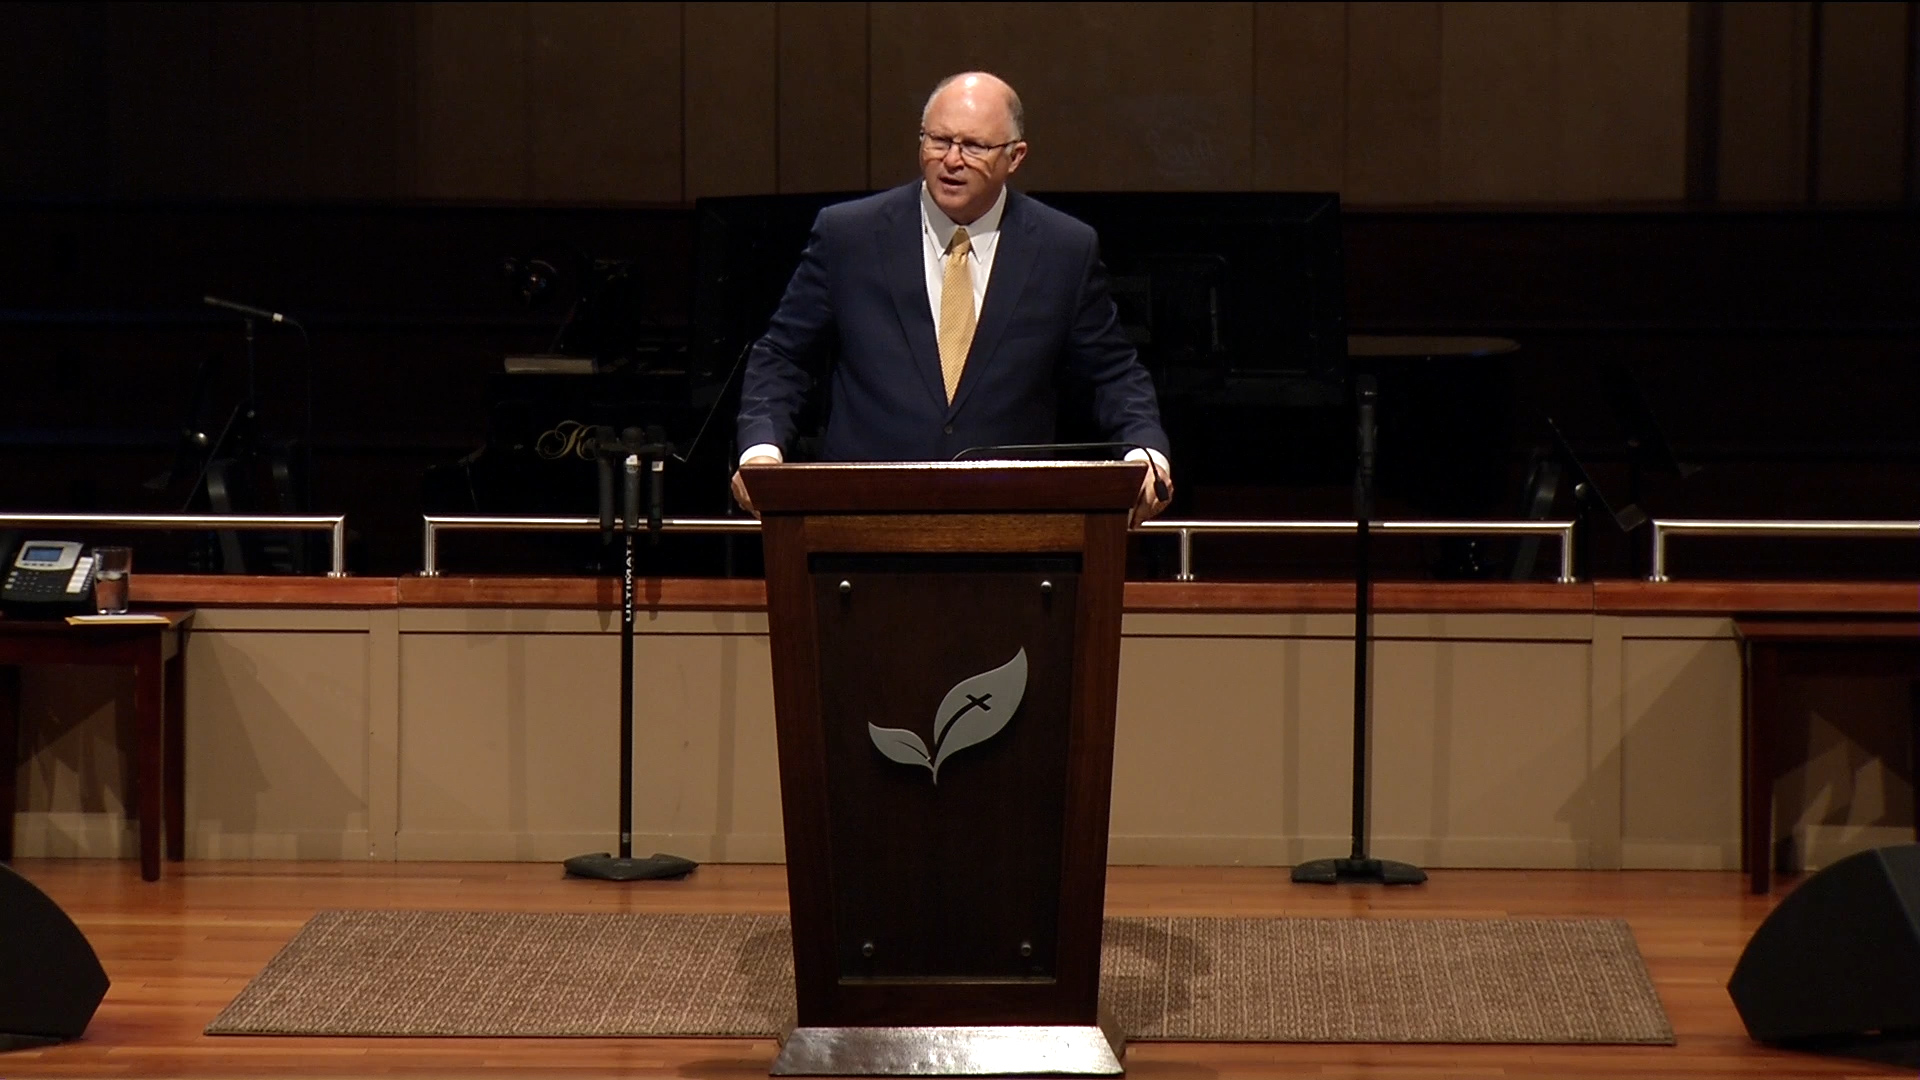 Pastor Paul Chappell: What Shall I Do For Thee?